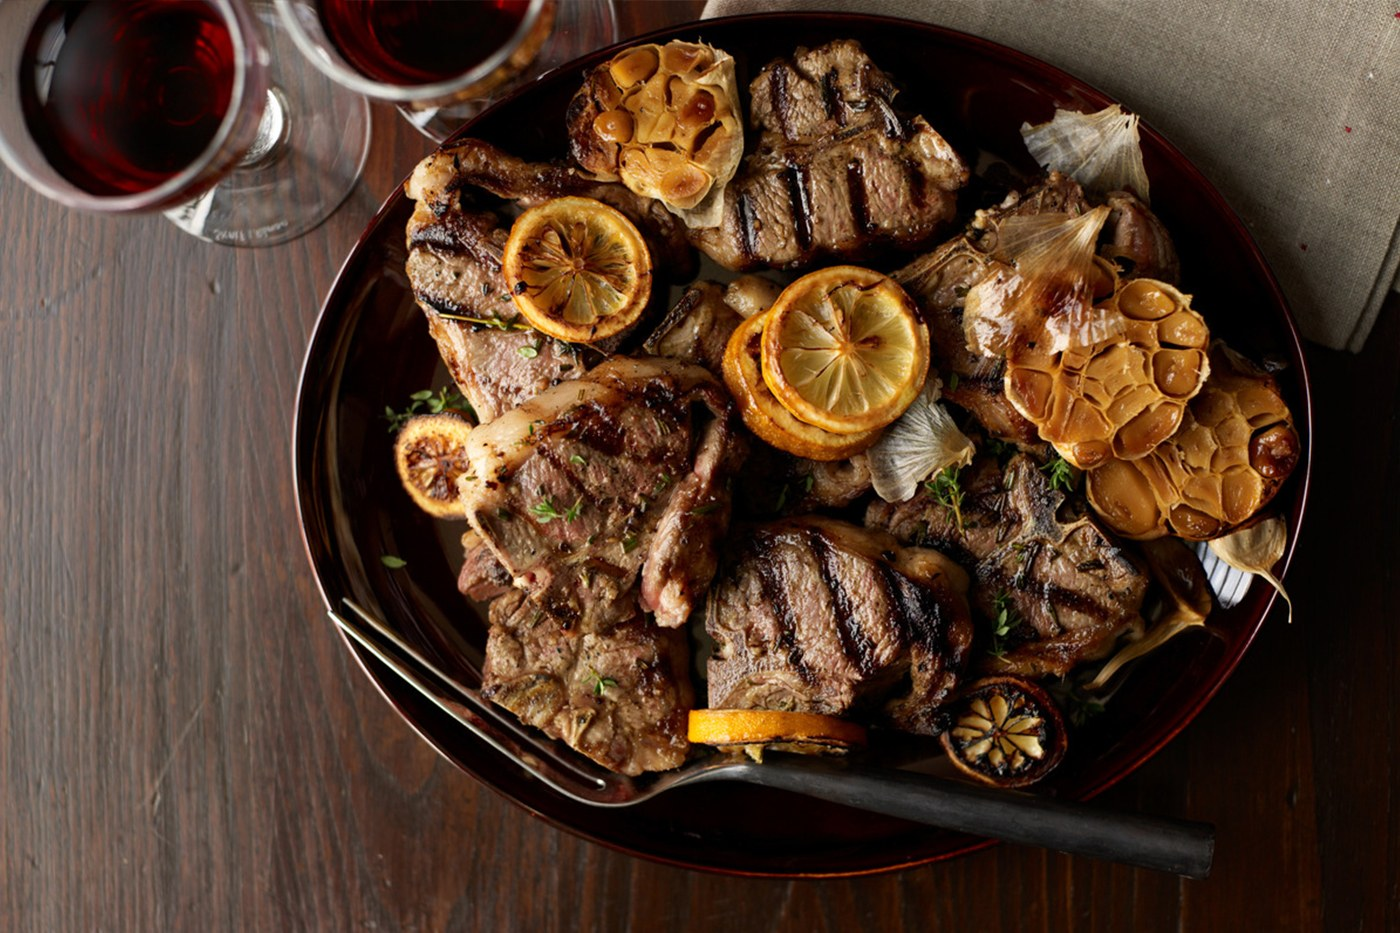 16_FerrerWines_NativeArticle_Sunday-Supper